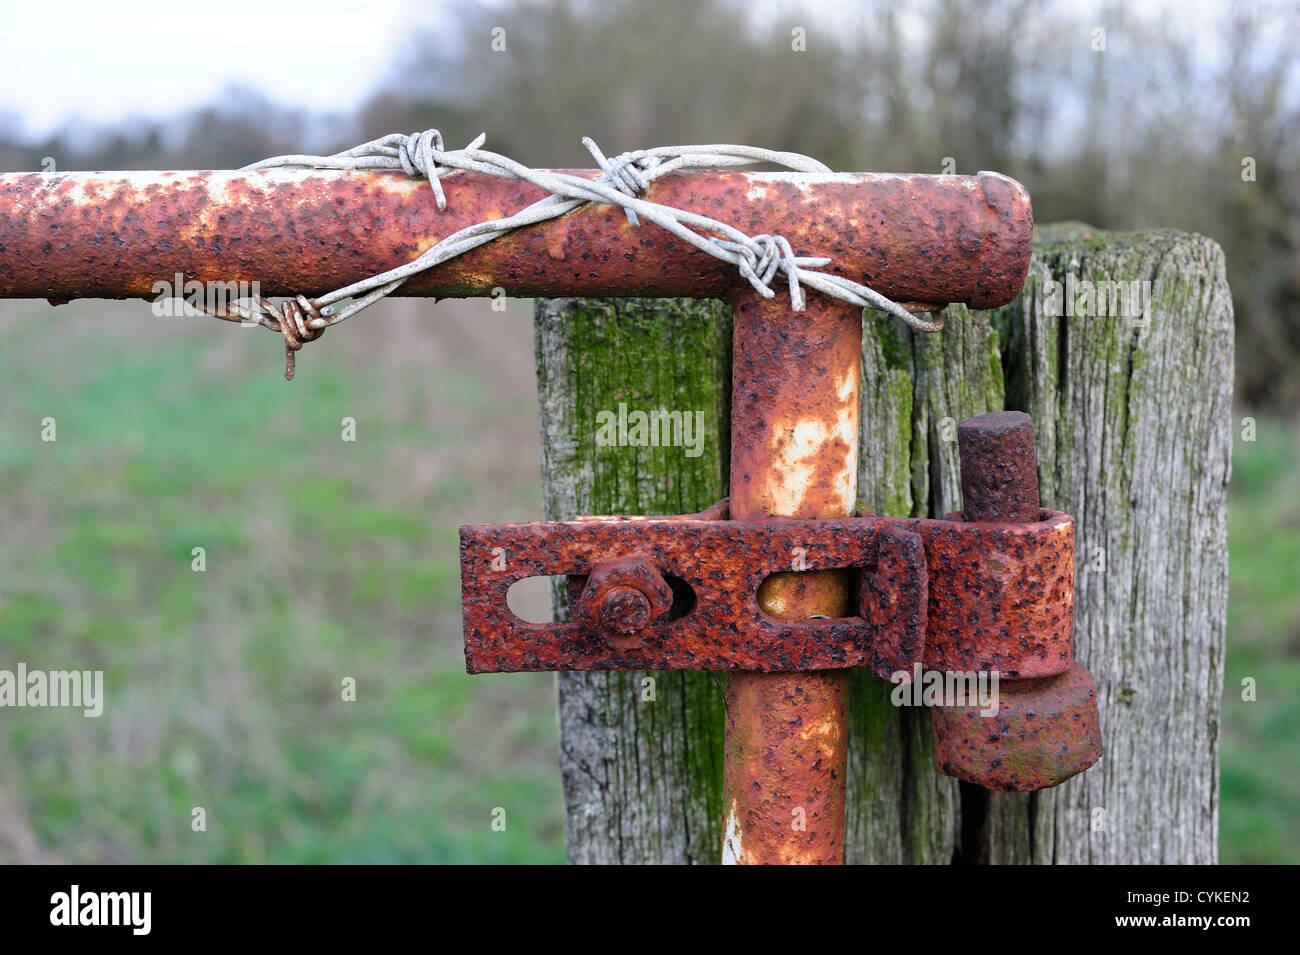 Barbed wire on a rusty gate Stock Photo: 51445102 - Alamy